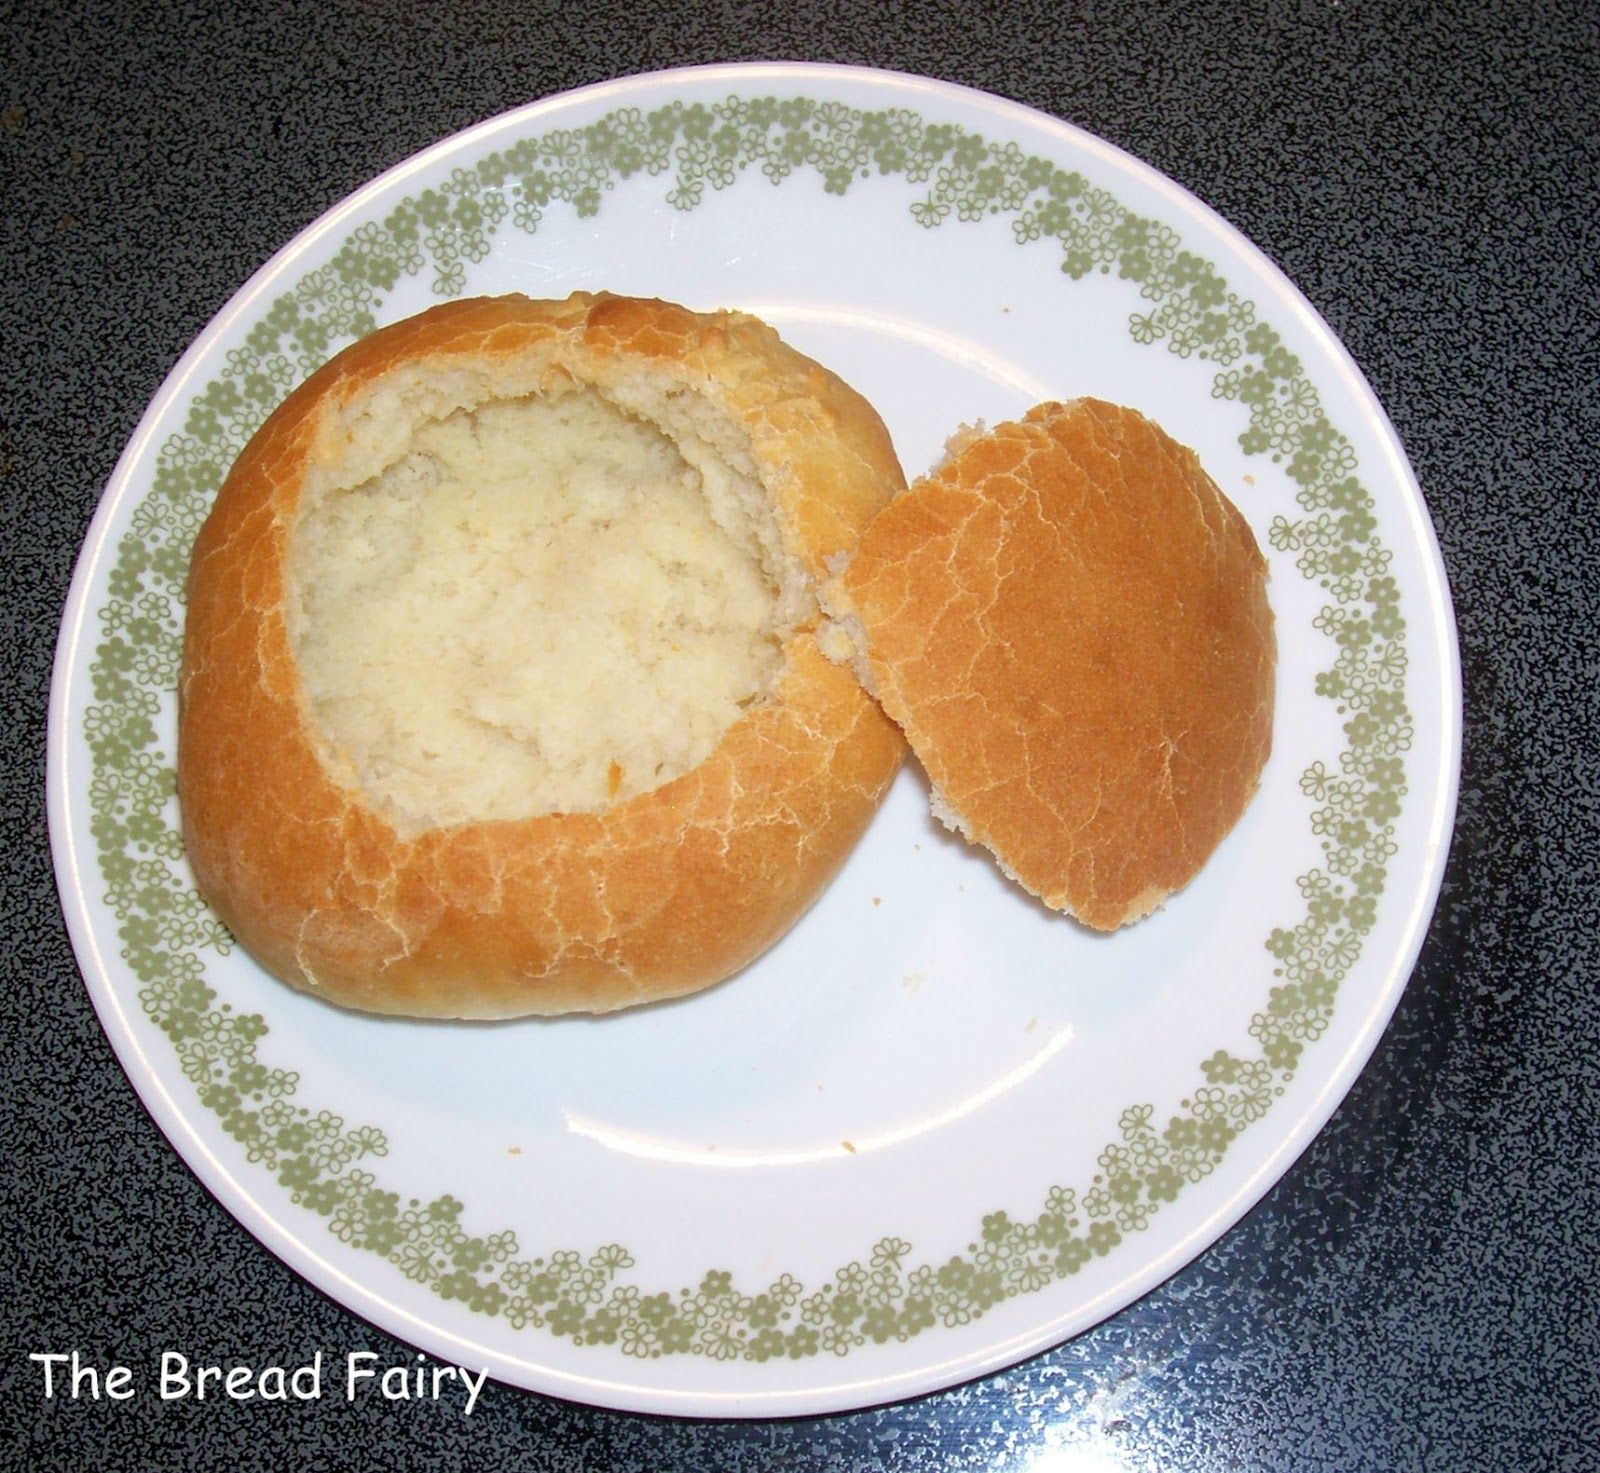 The Bread Fairy: Sourdough Bread Bowls and Everyday Moms Meals Crockpot Broccoli Cheese Soup